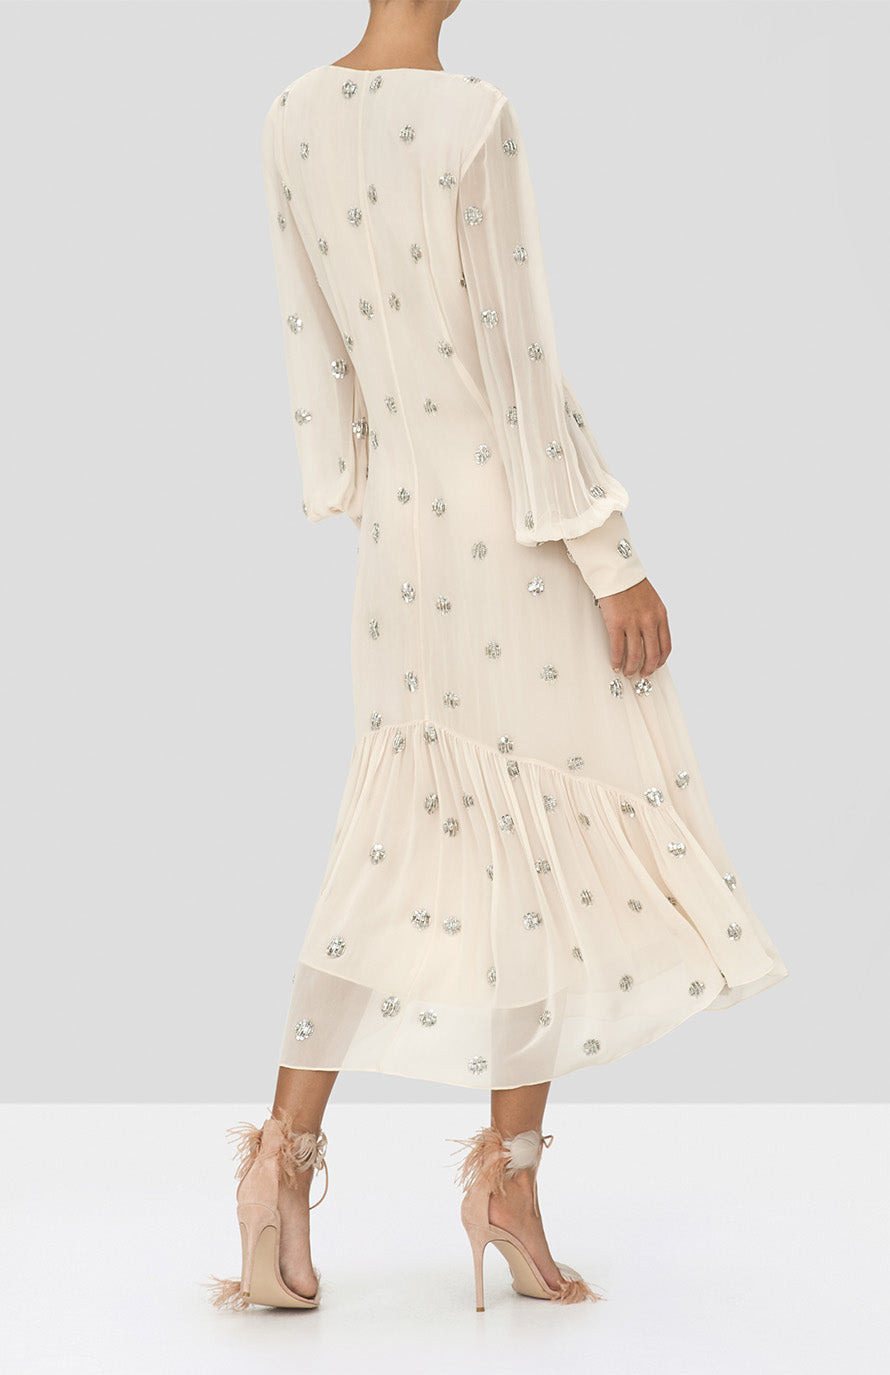 Alexis Roksana Dress in Embellished Blush from the Holiday 2019 Ready To Wear Collection - Rear View